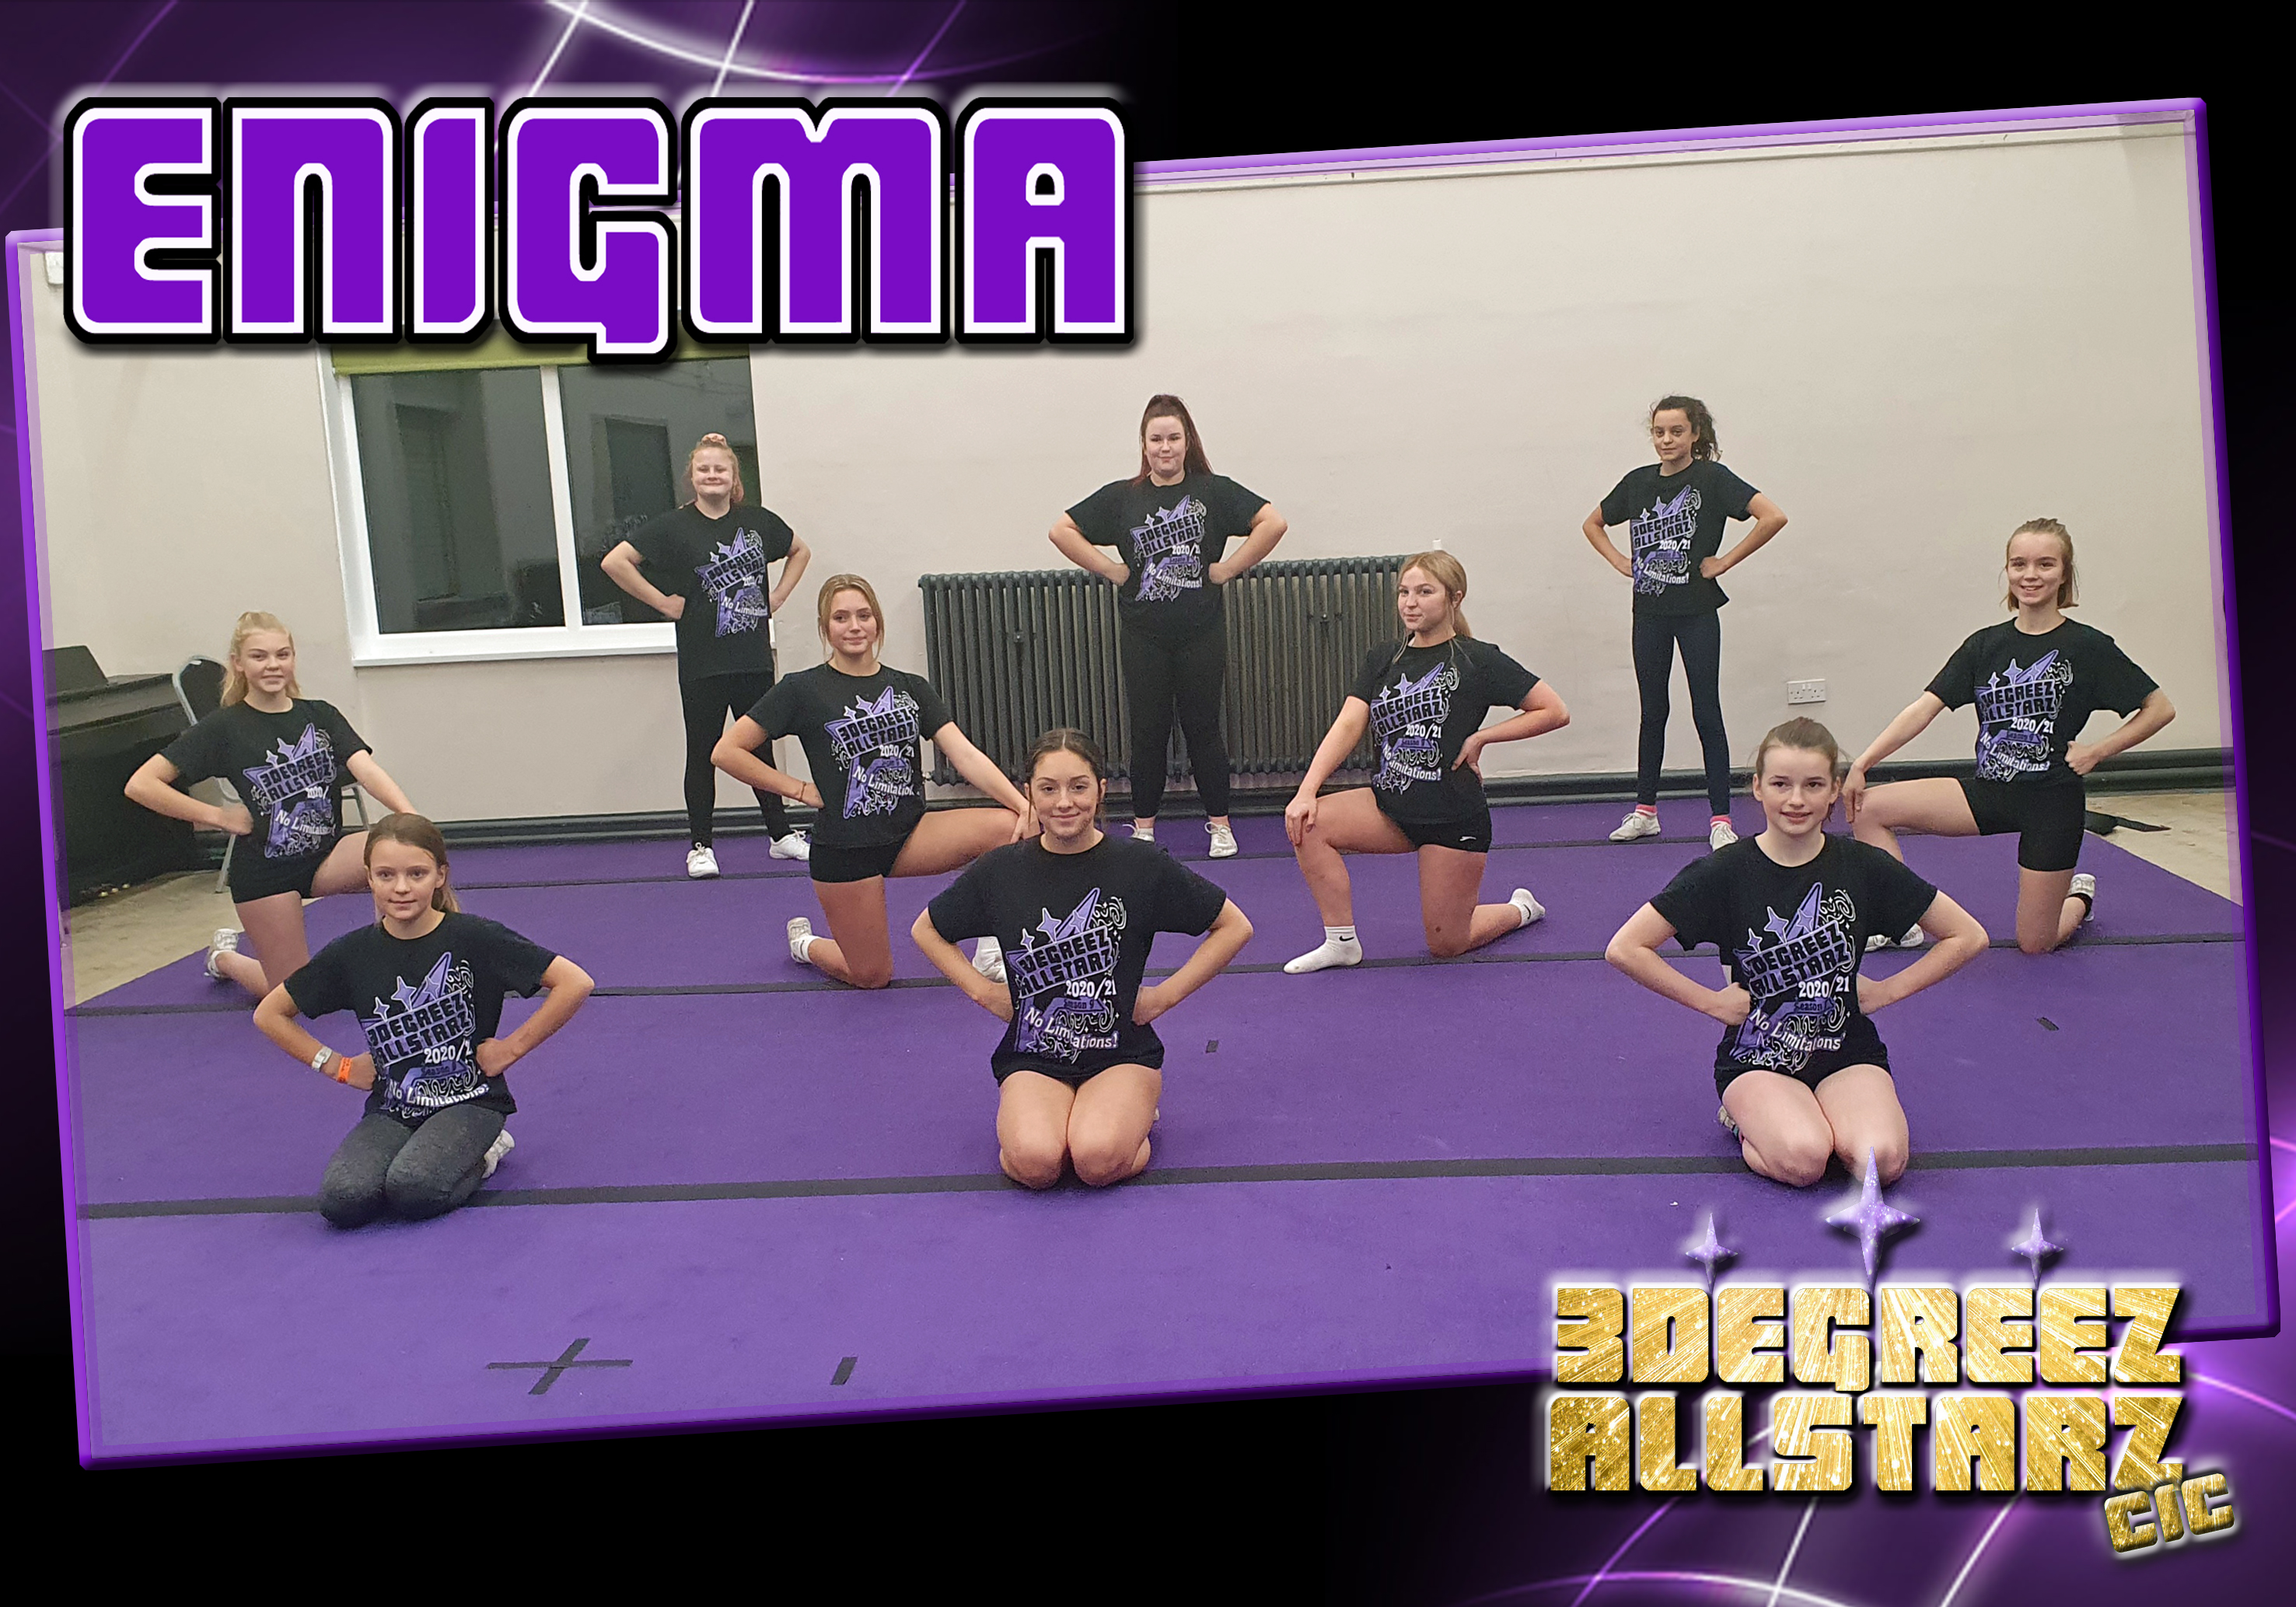 Team Enigma